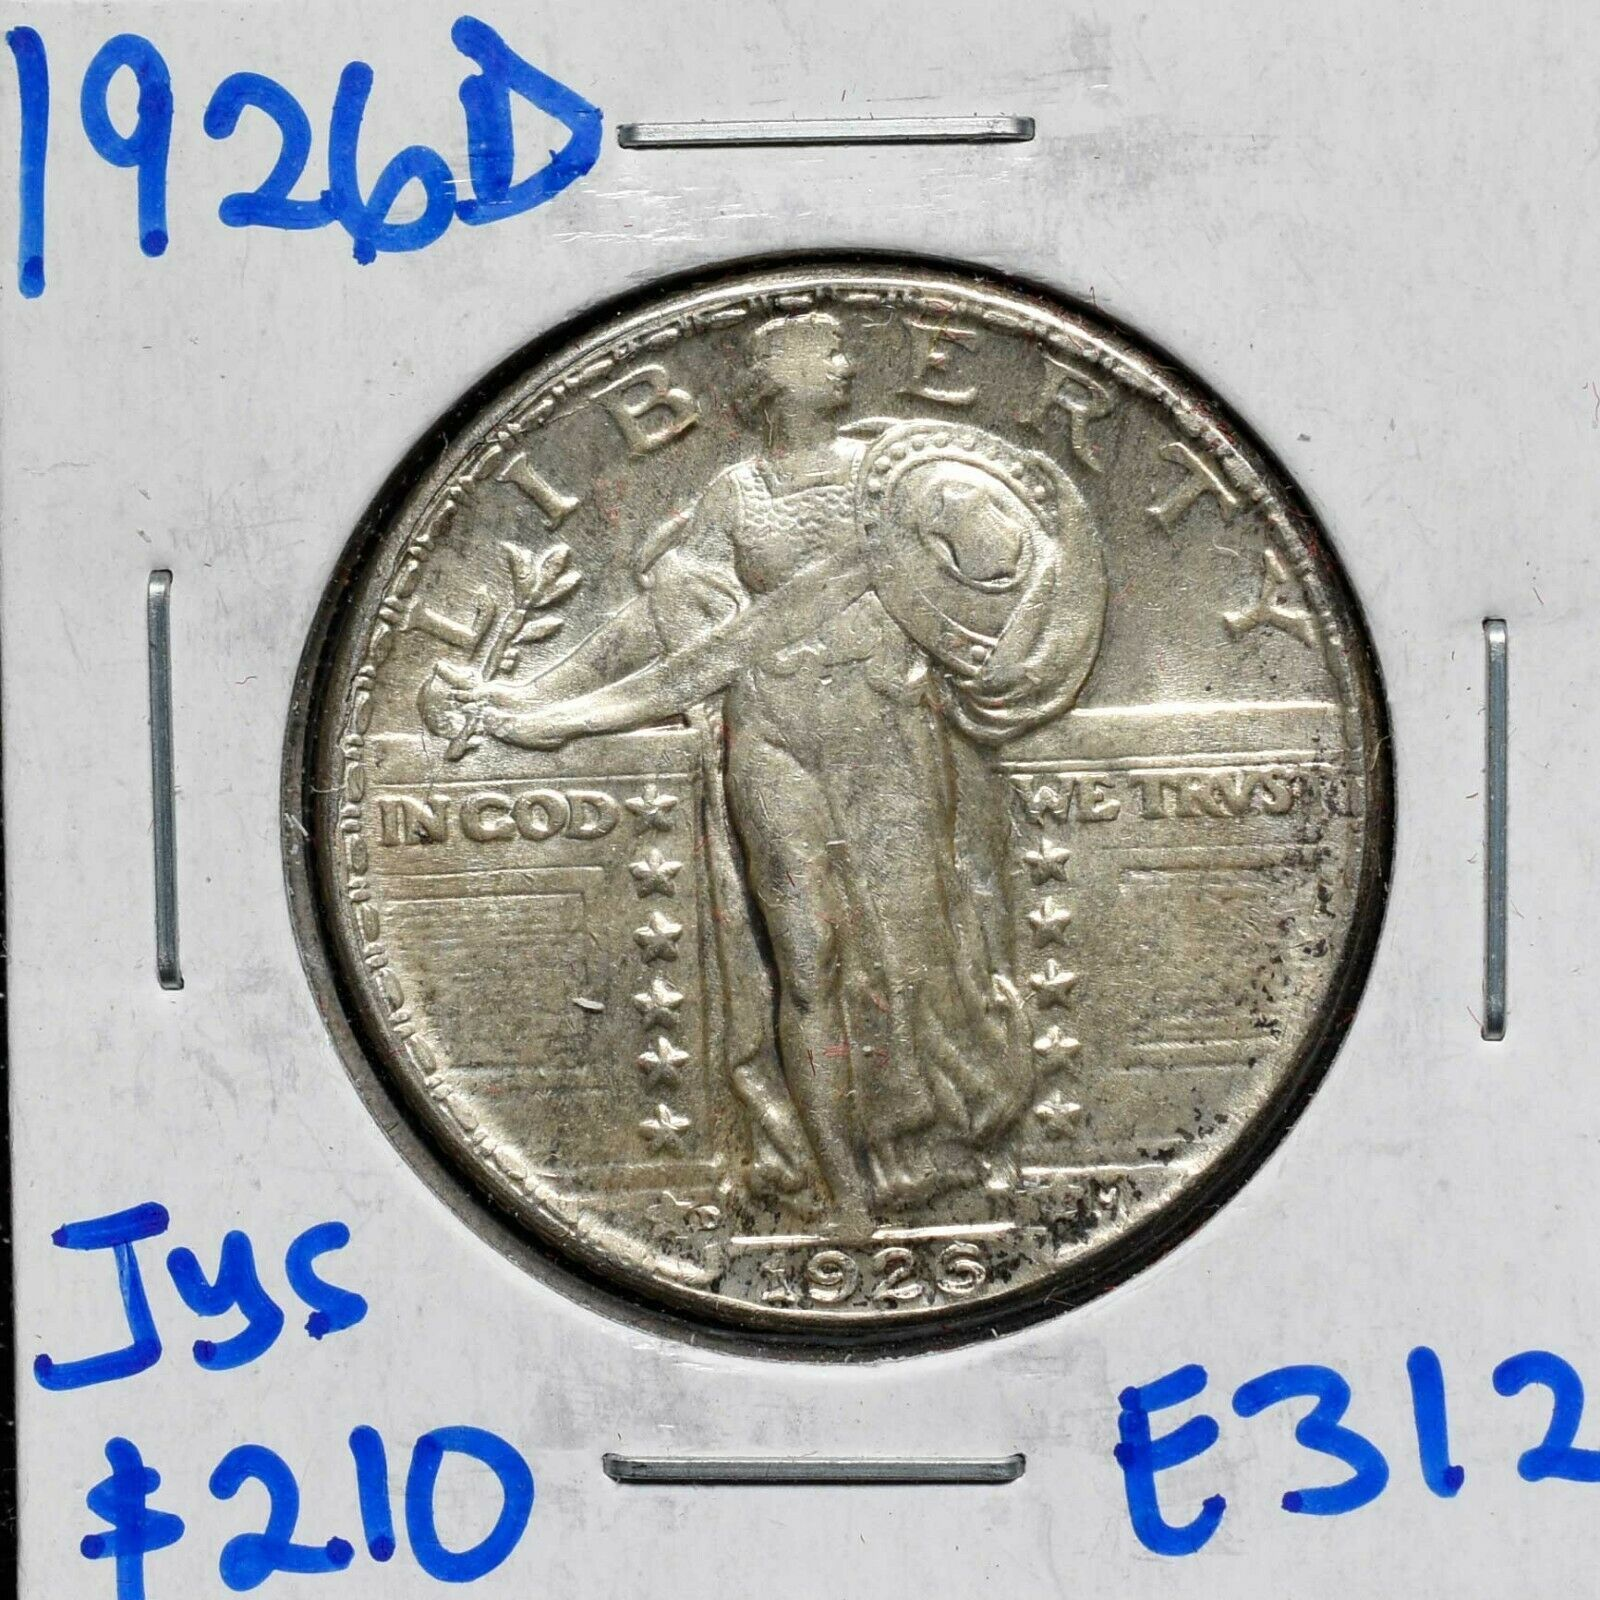 1926D Standing Liberty Silver 25¢ Quarter Coin Lot E 312